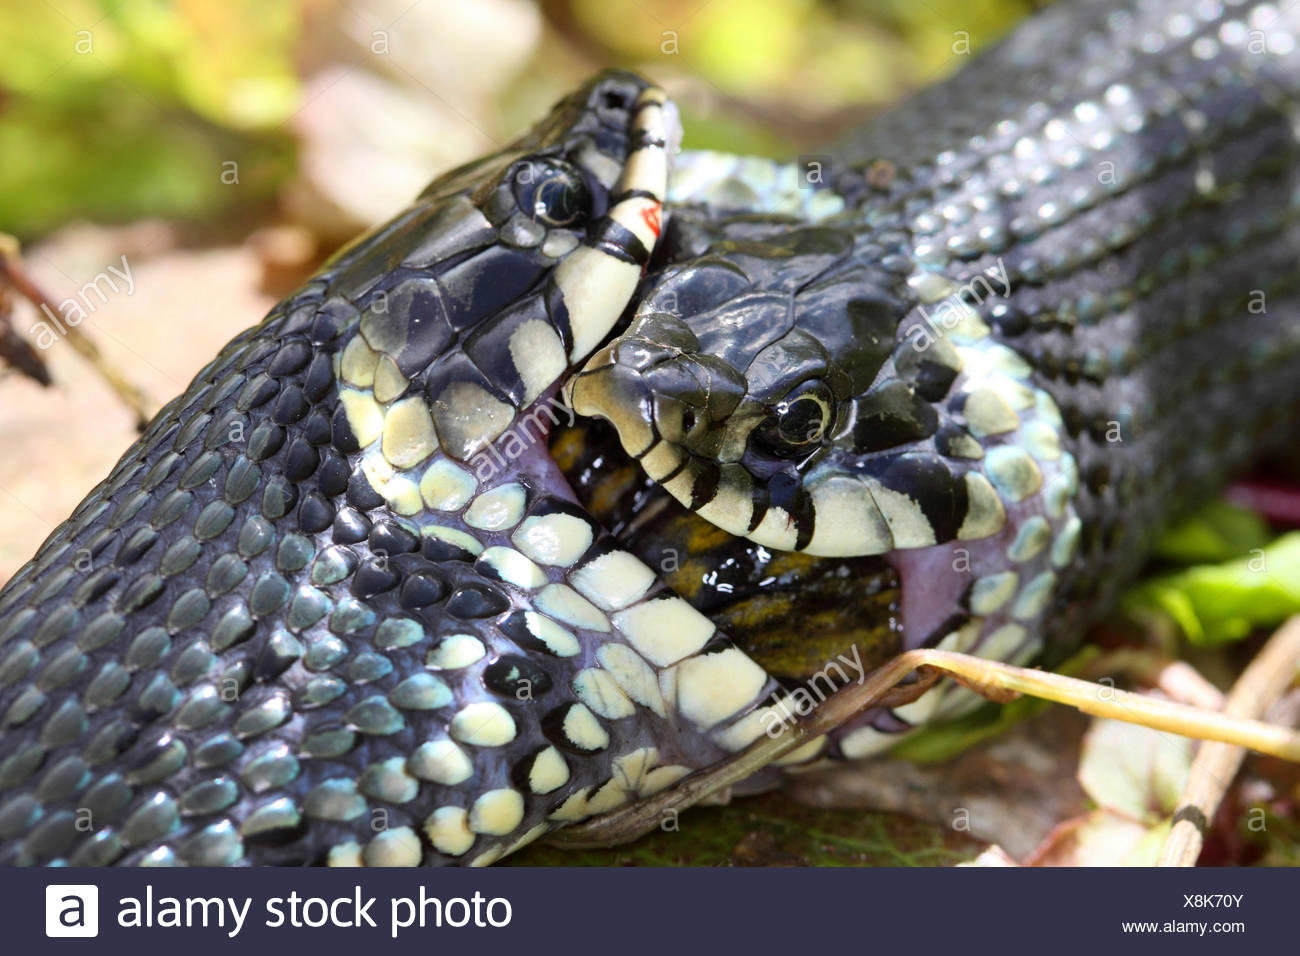 grass snake (Natrix natrix), series picture 17, two snakes fighting for a frog, Germany, Mecklenburg-Western Pomerania - Stock Image